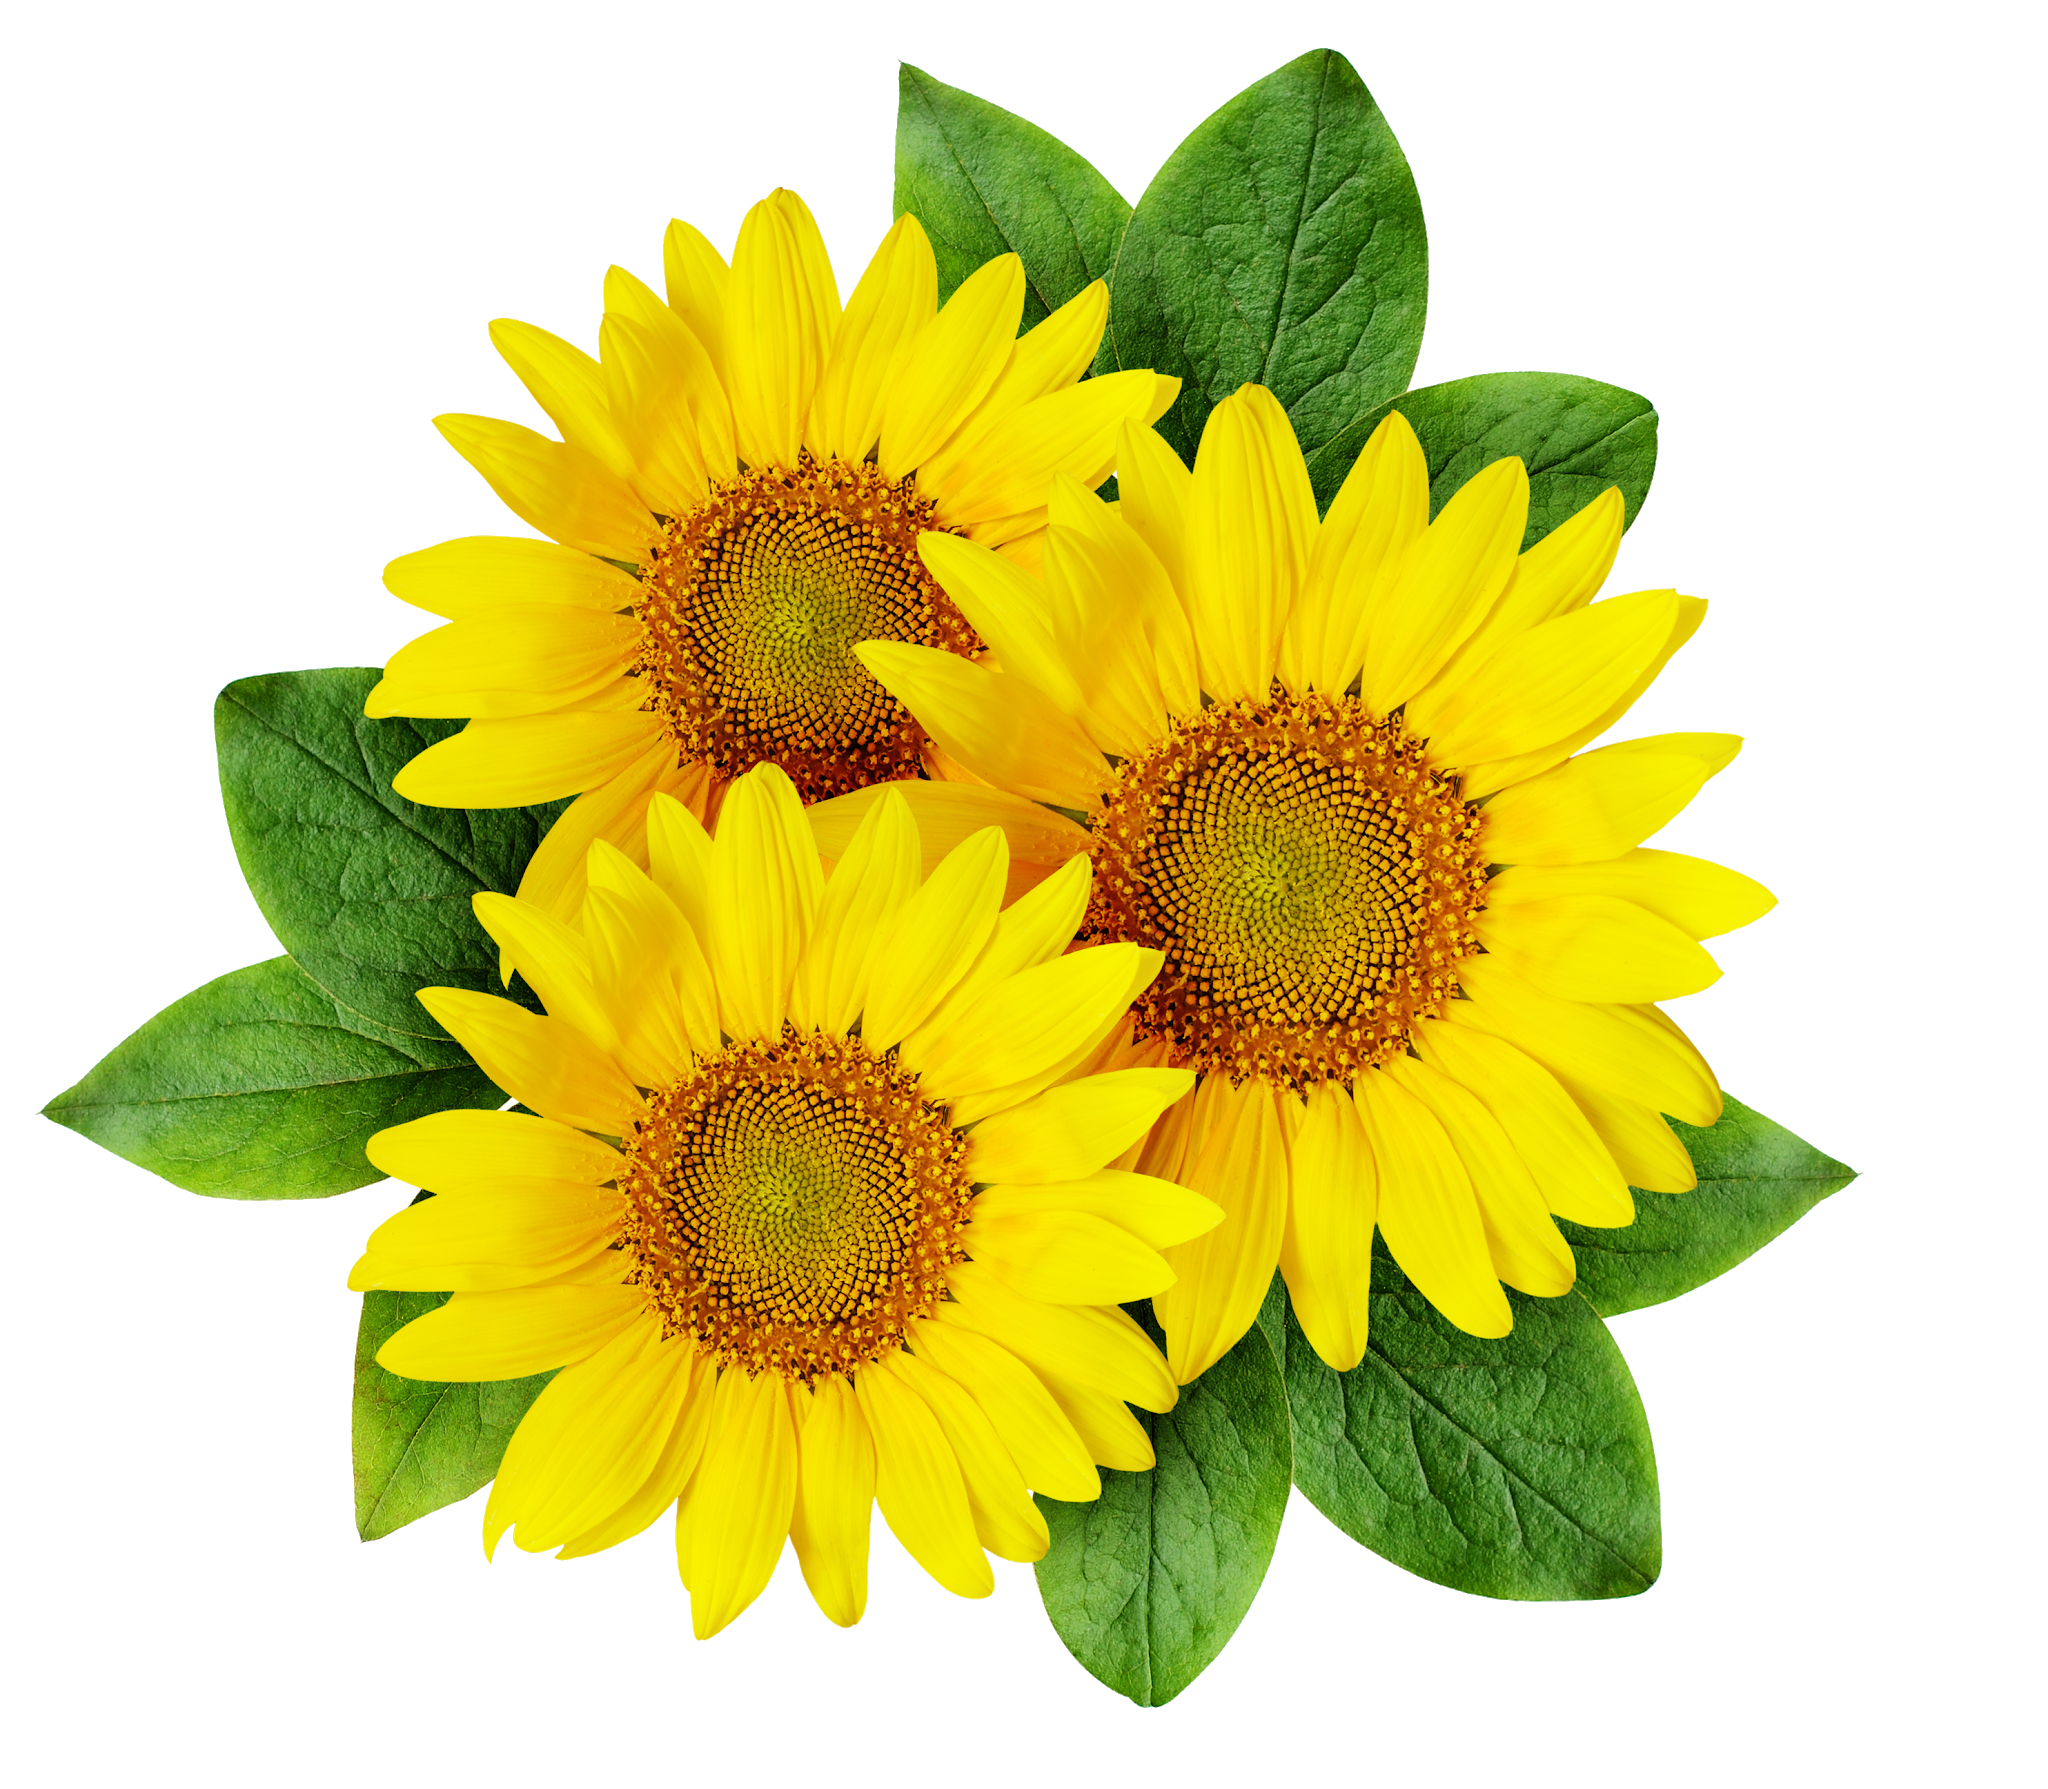 Common sunflower Drawing Illustration - Colourful ...